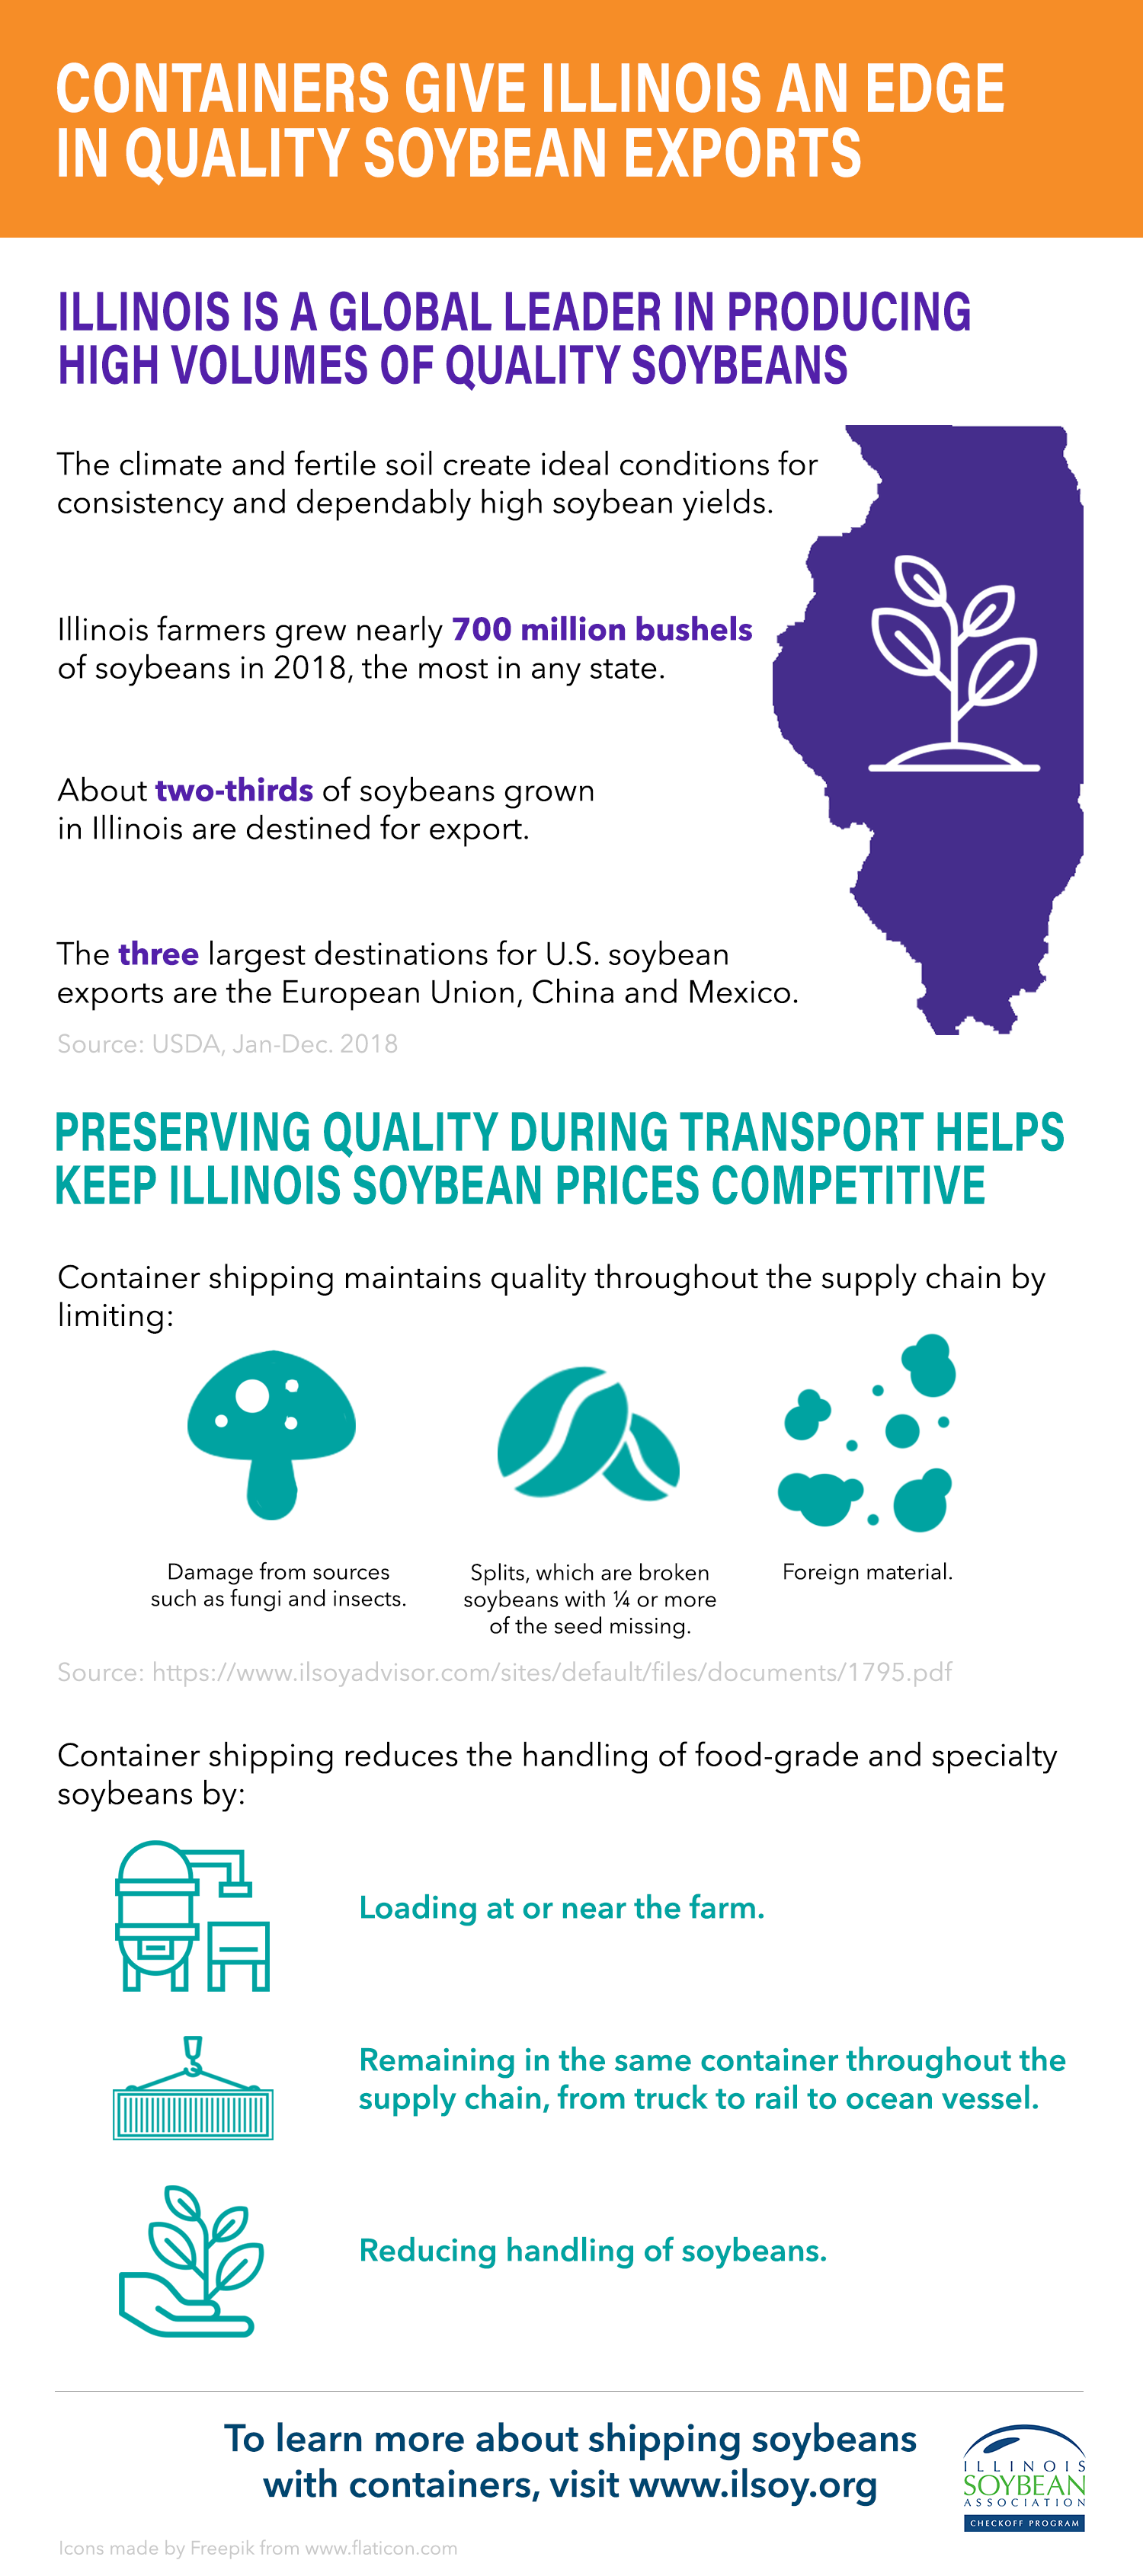 Containers Give Illinois An Edge In Quality Soybean Exports